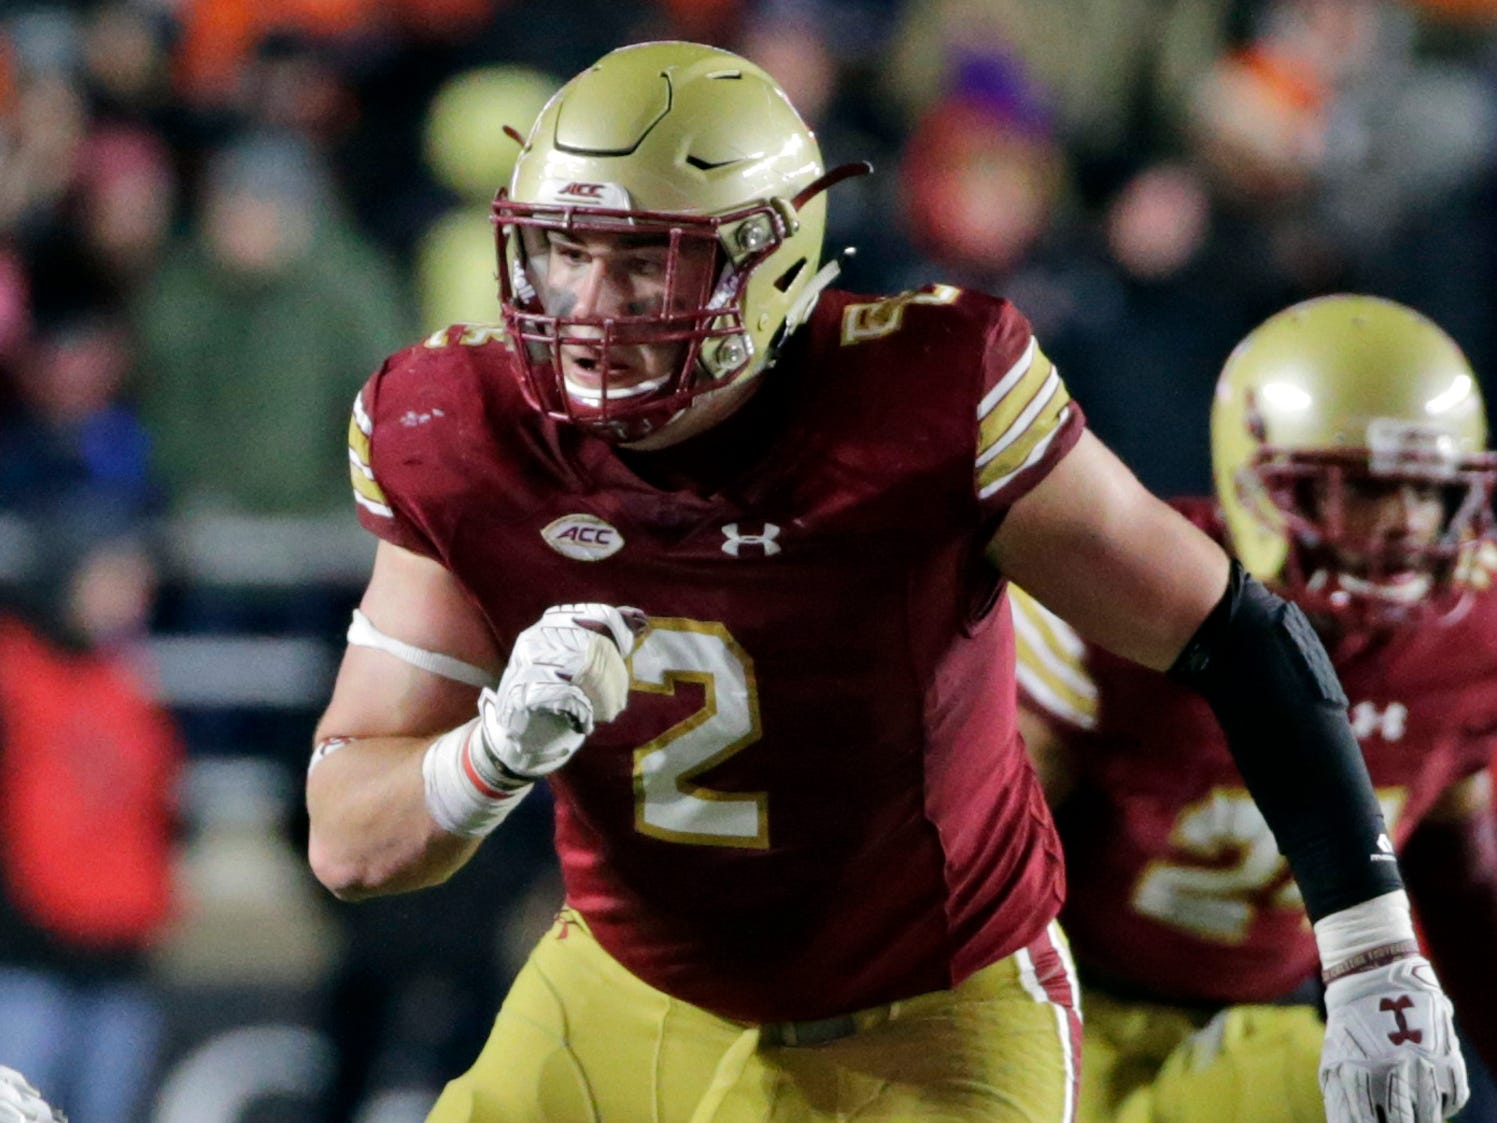 29. Zach Allen, DE, Boston College: Allen is a bigger-bodied edge player who should be stout against the run, while relying on his motor as a pass-rusher. He can slide inside on passing downs and has shown a knack for getting his hands in the passing lane, batting down seven balls this year.